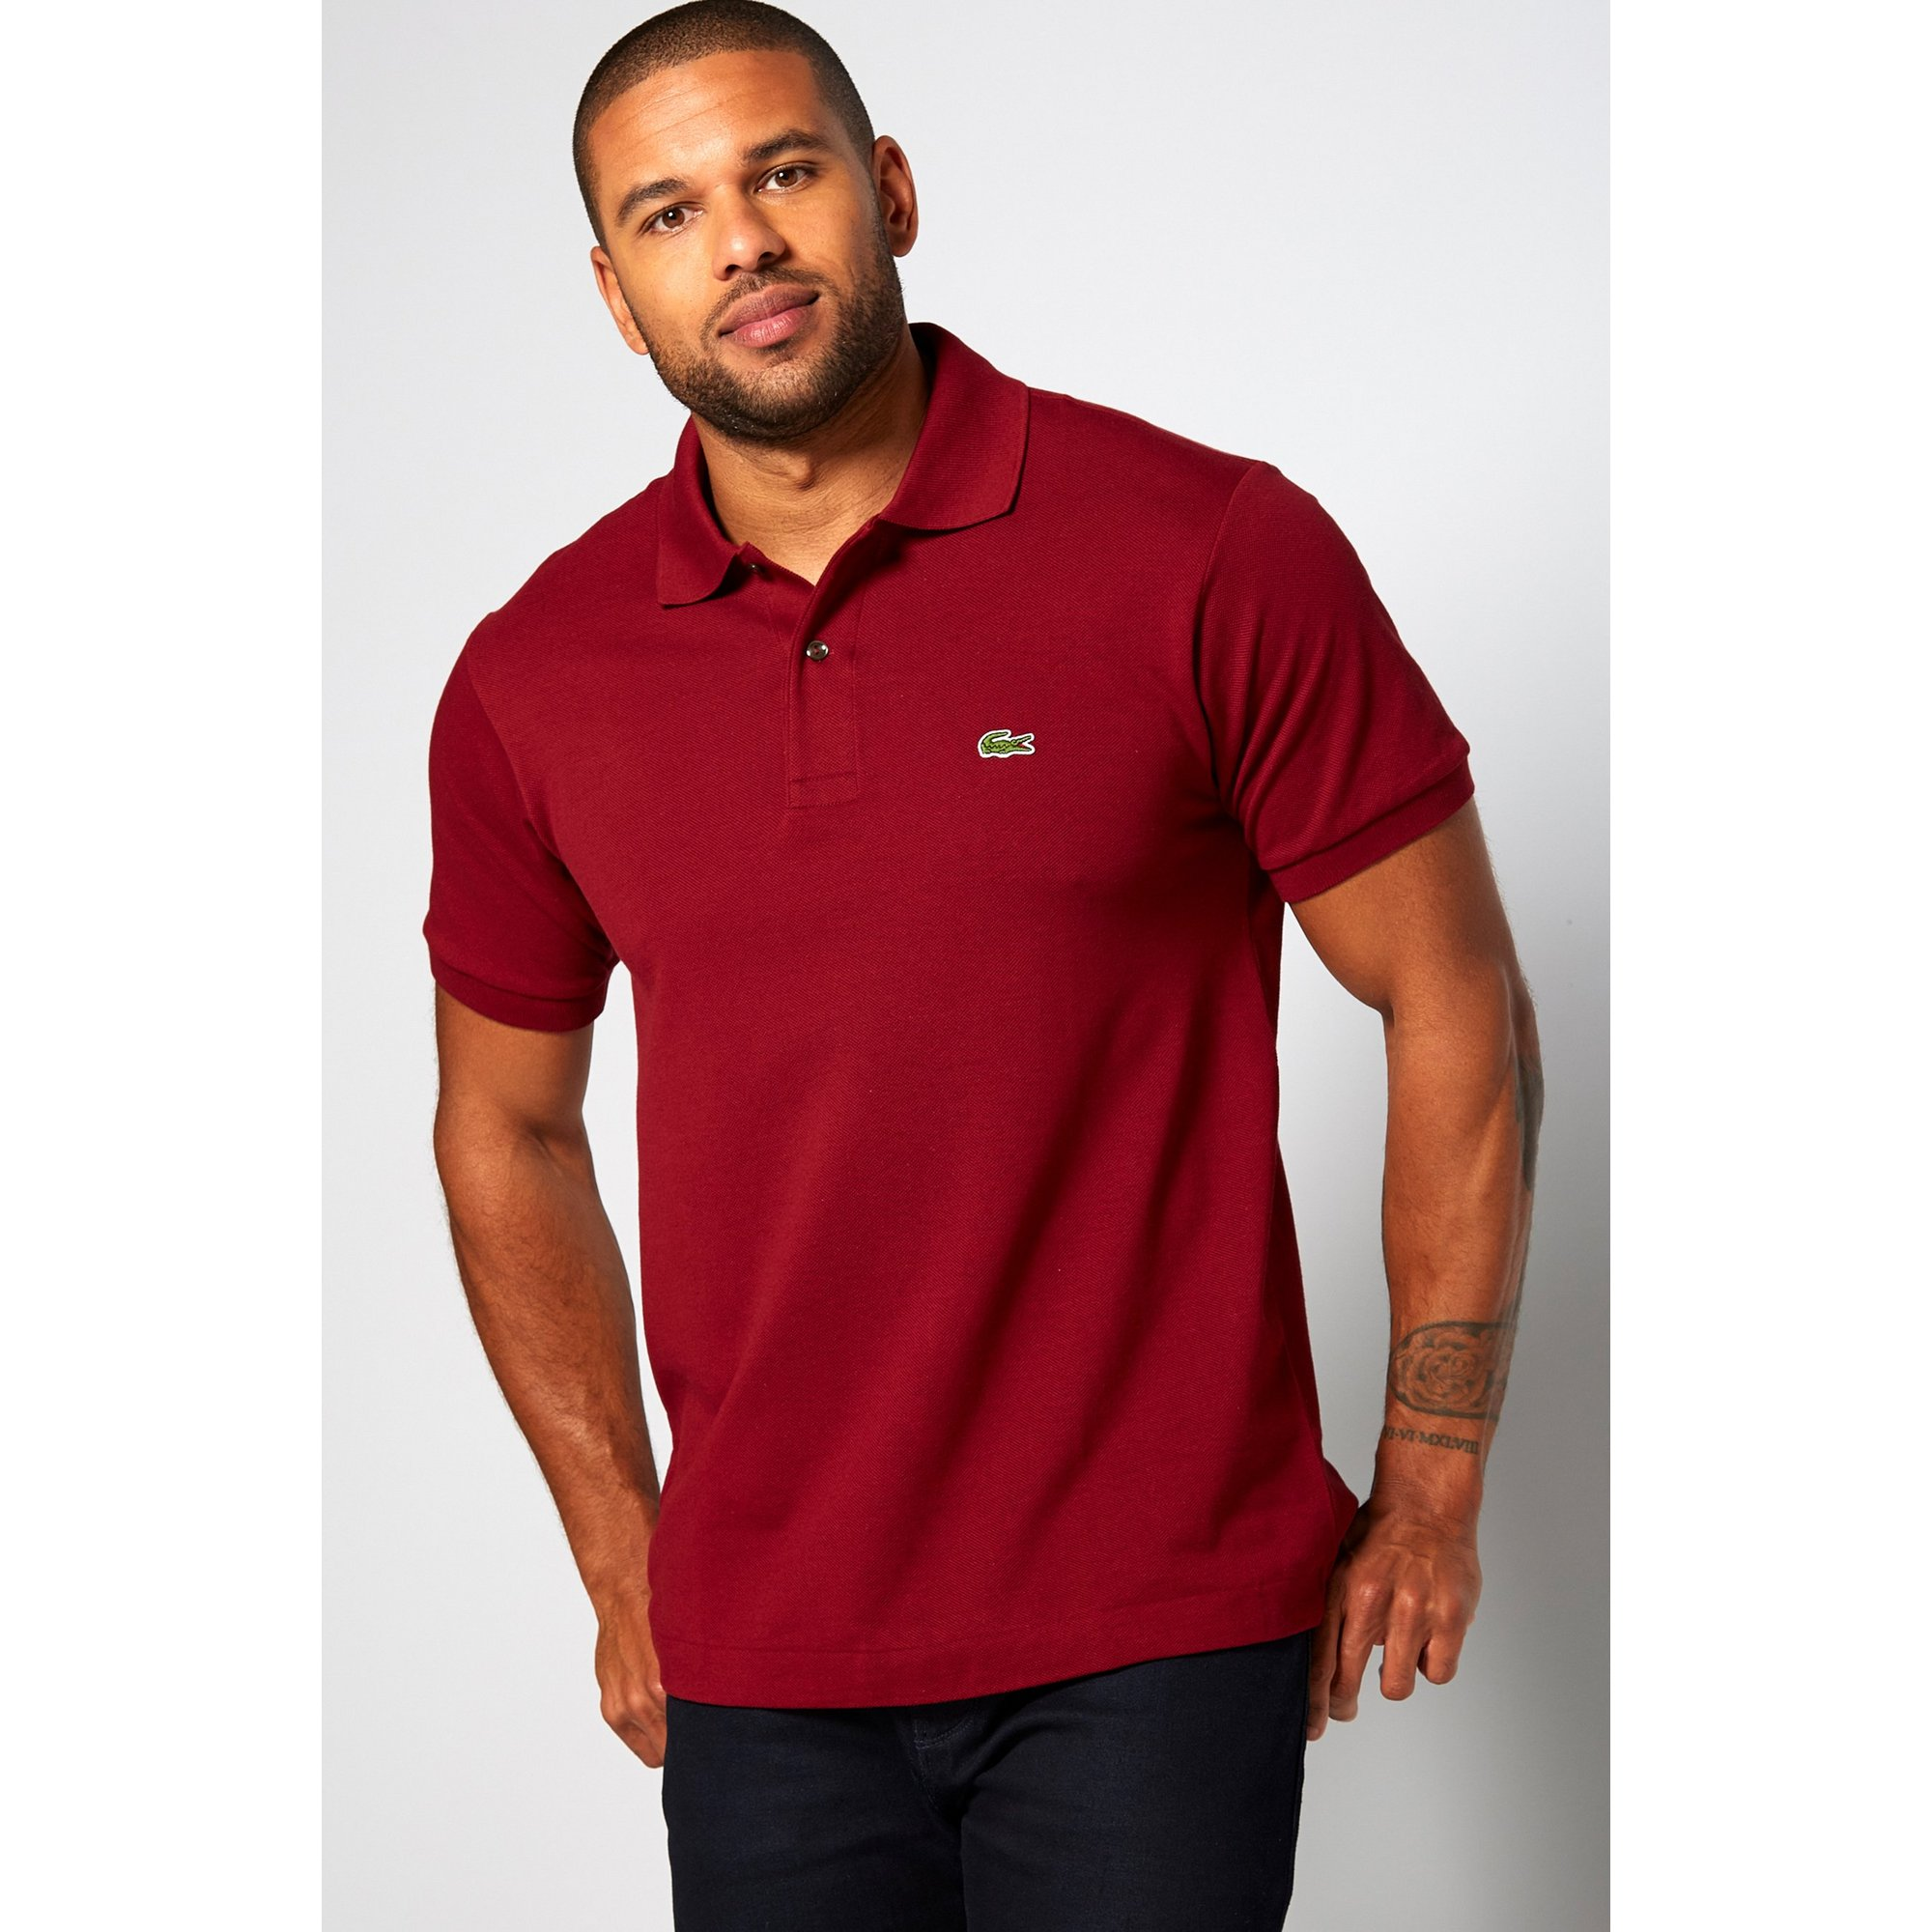 Image of Lacoste Classic Fit L.12.12 Polo Shirt